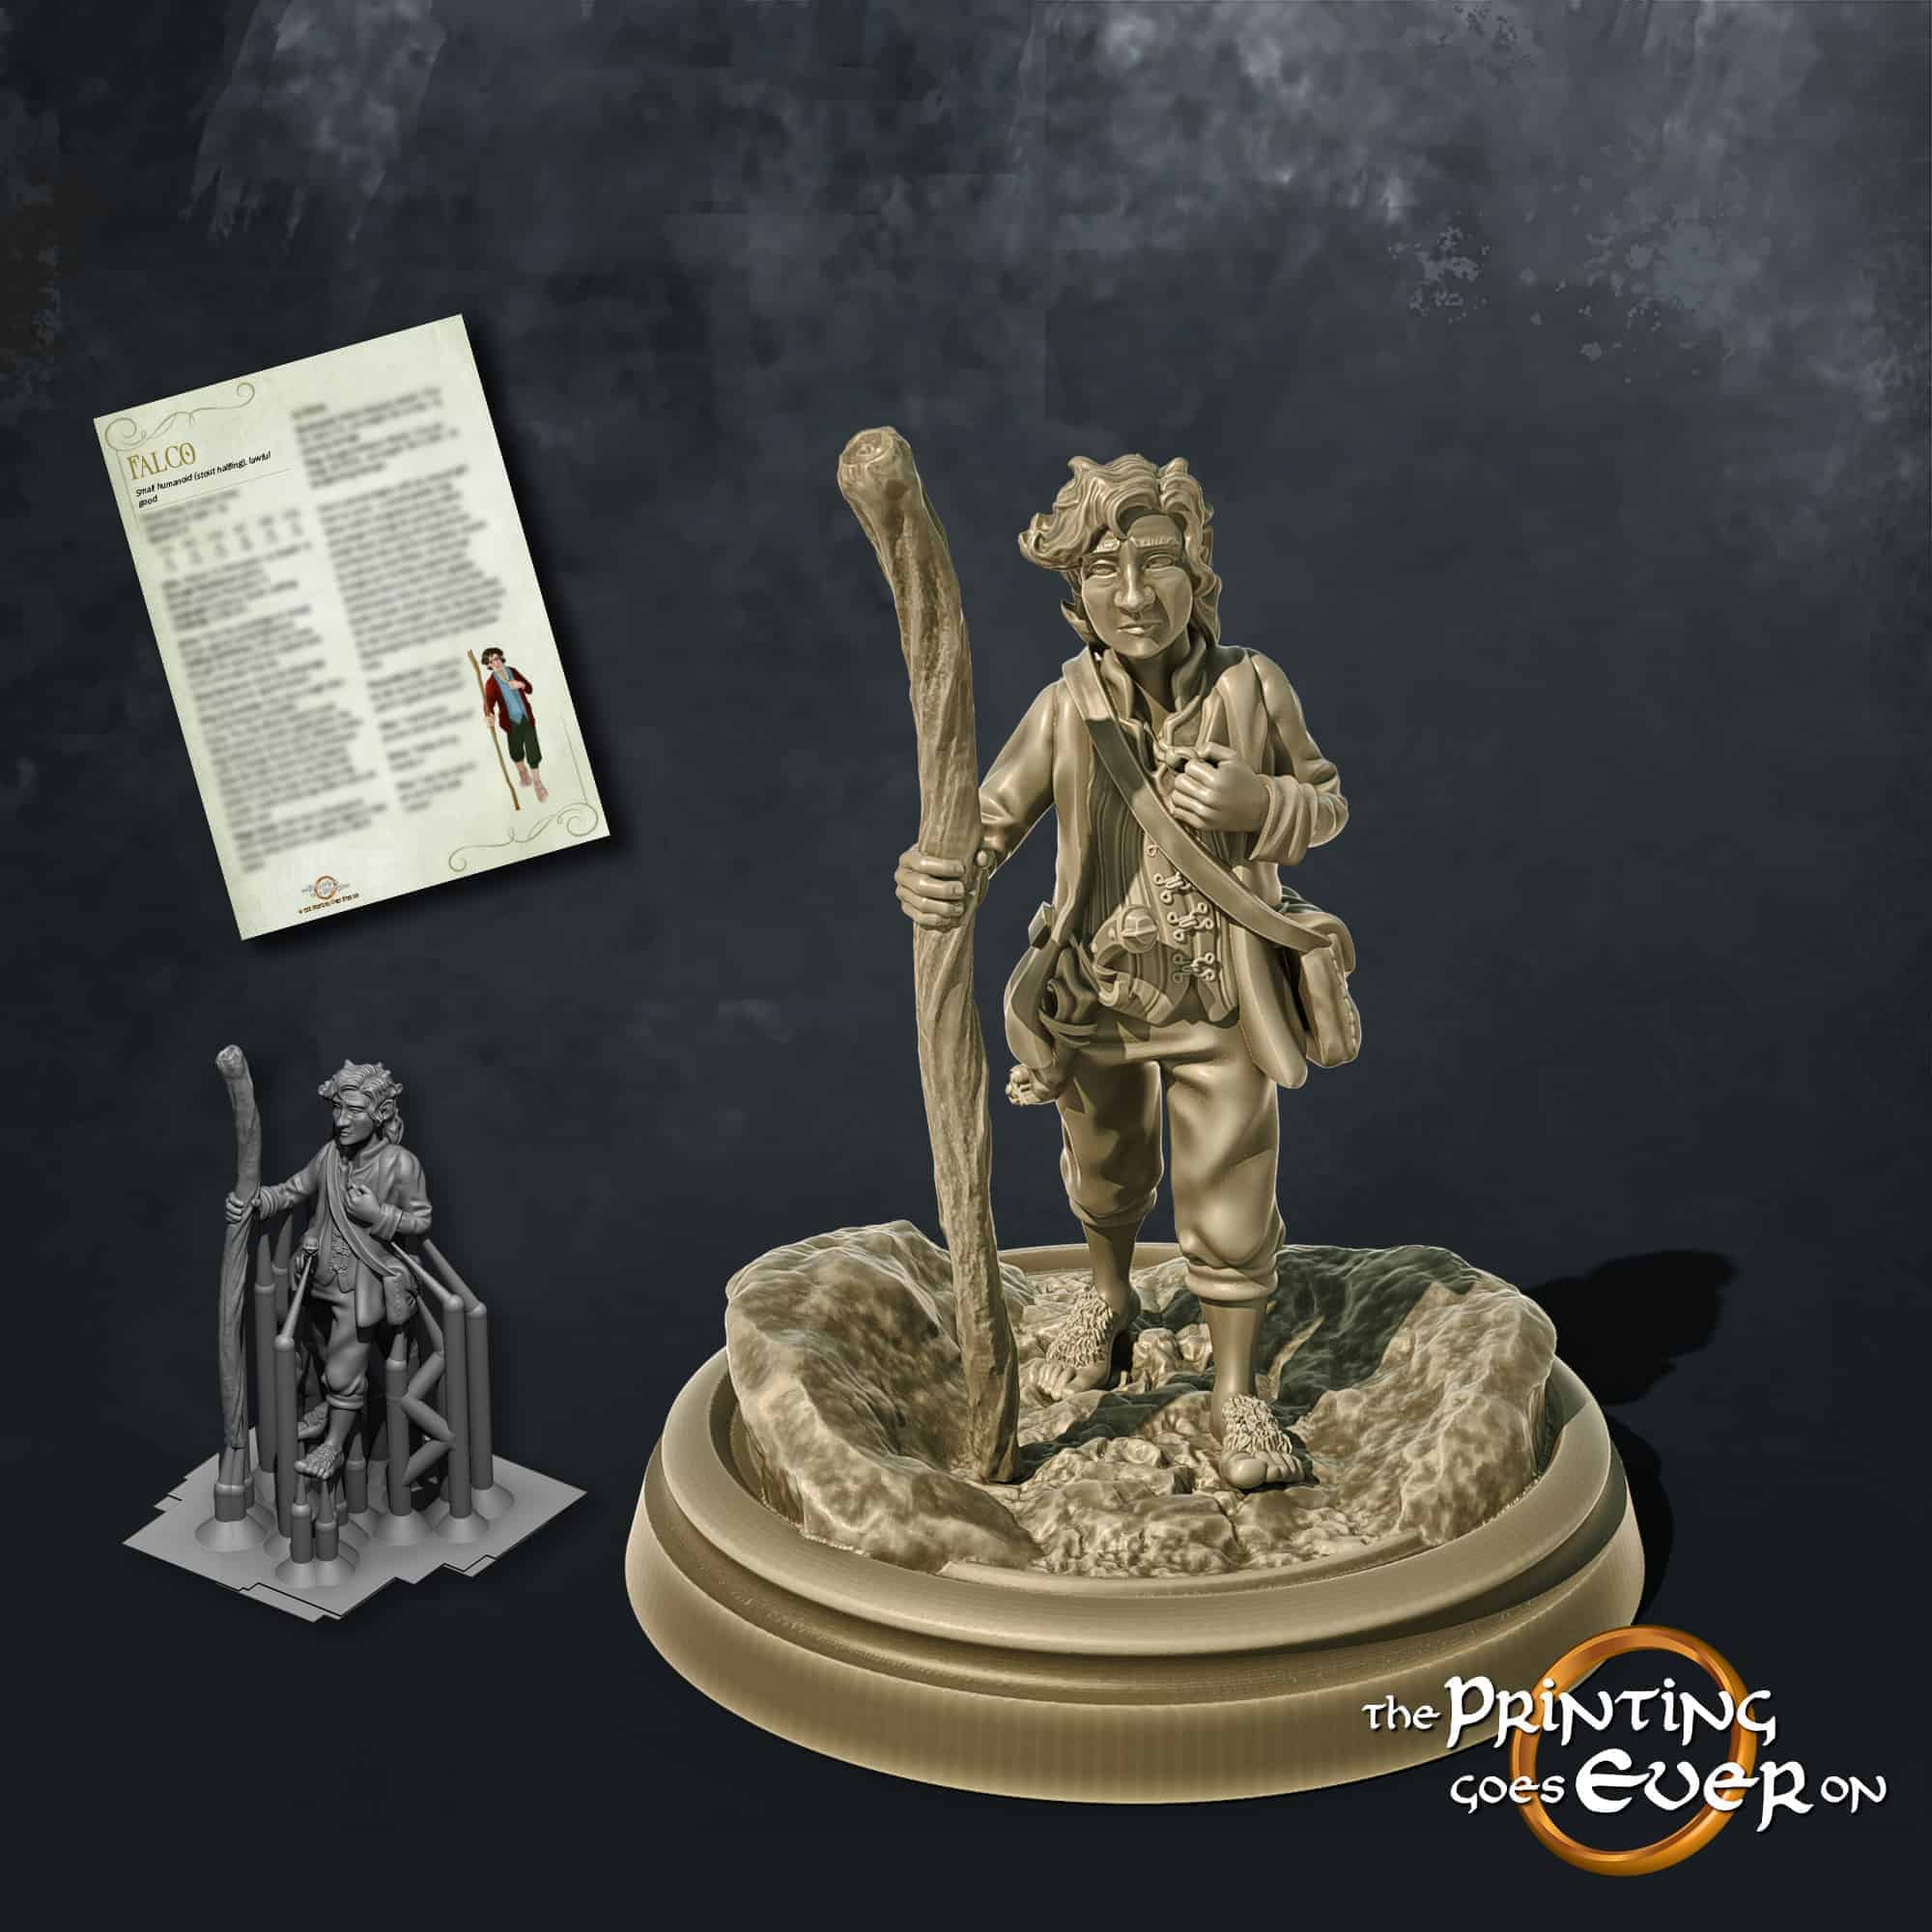 falco halfling adventurer with a walking stick 3d printable tabletop miniature from the printing goes ever on patreon welcome trove